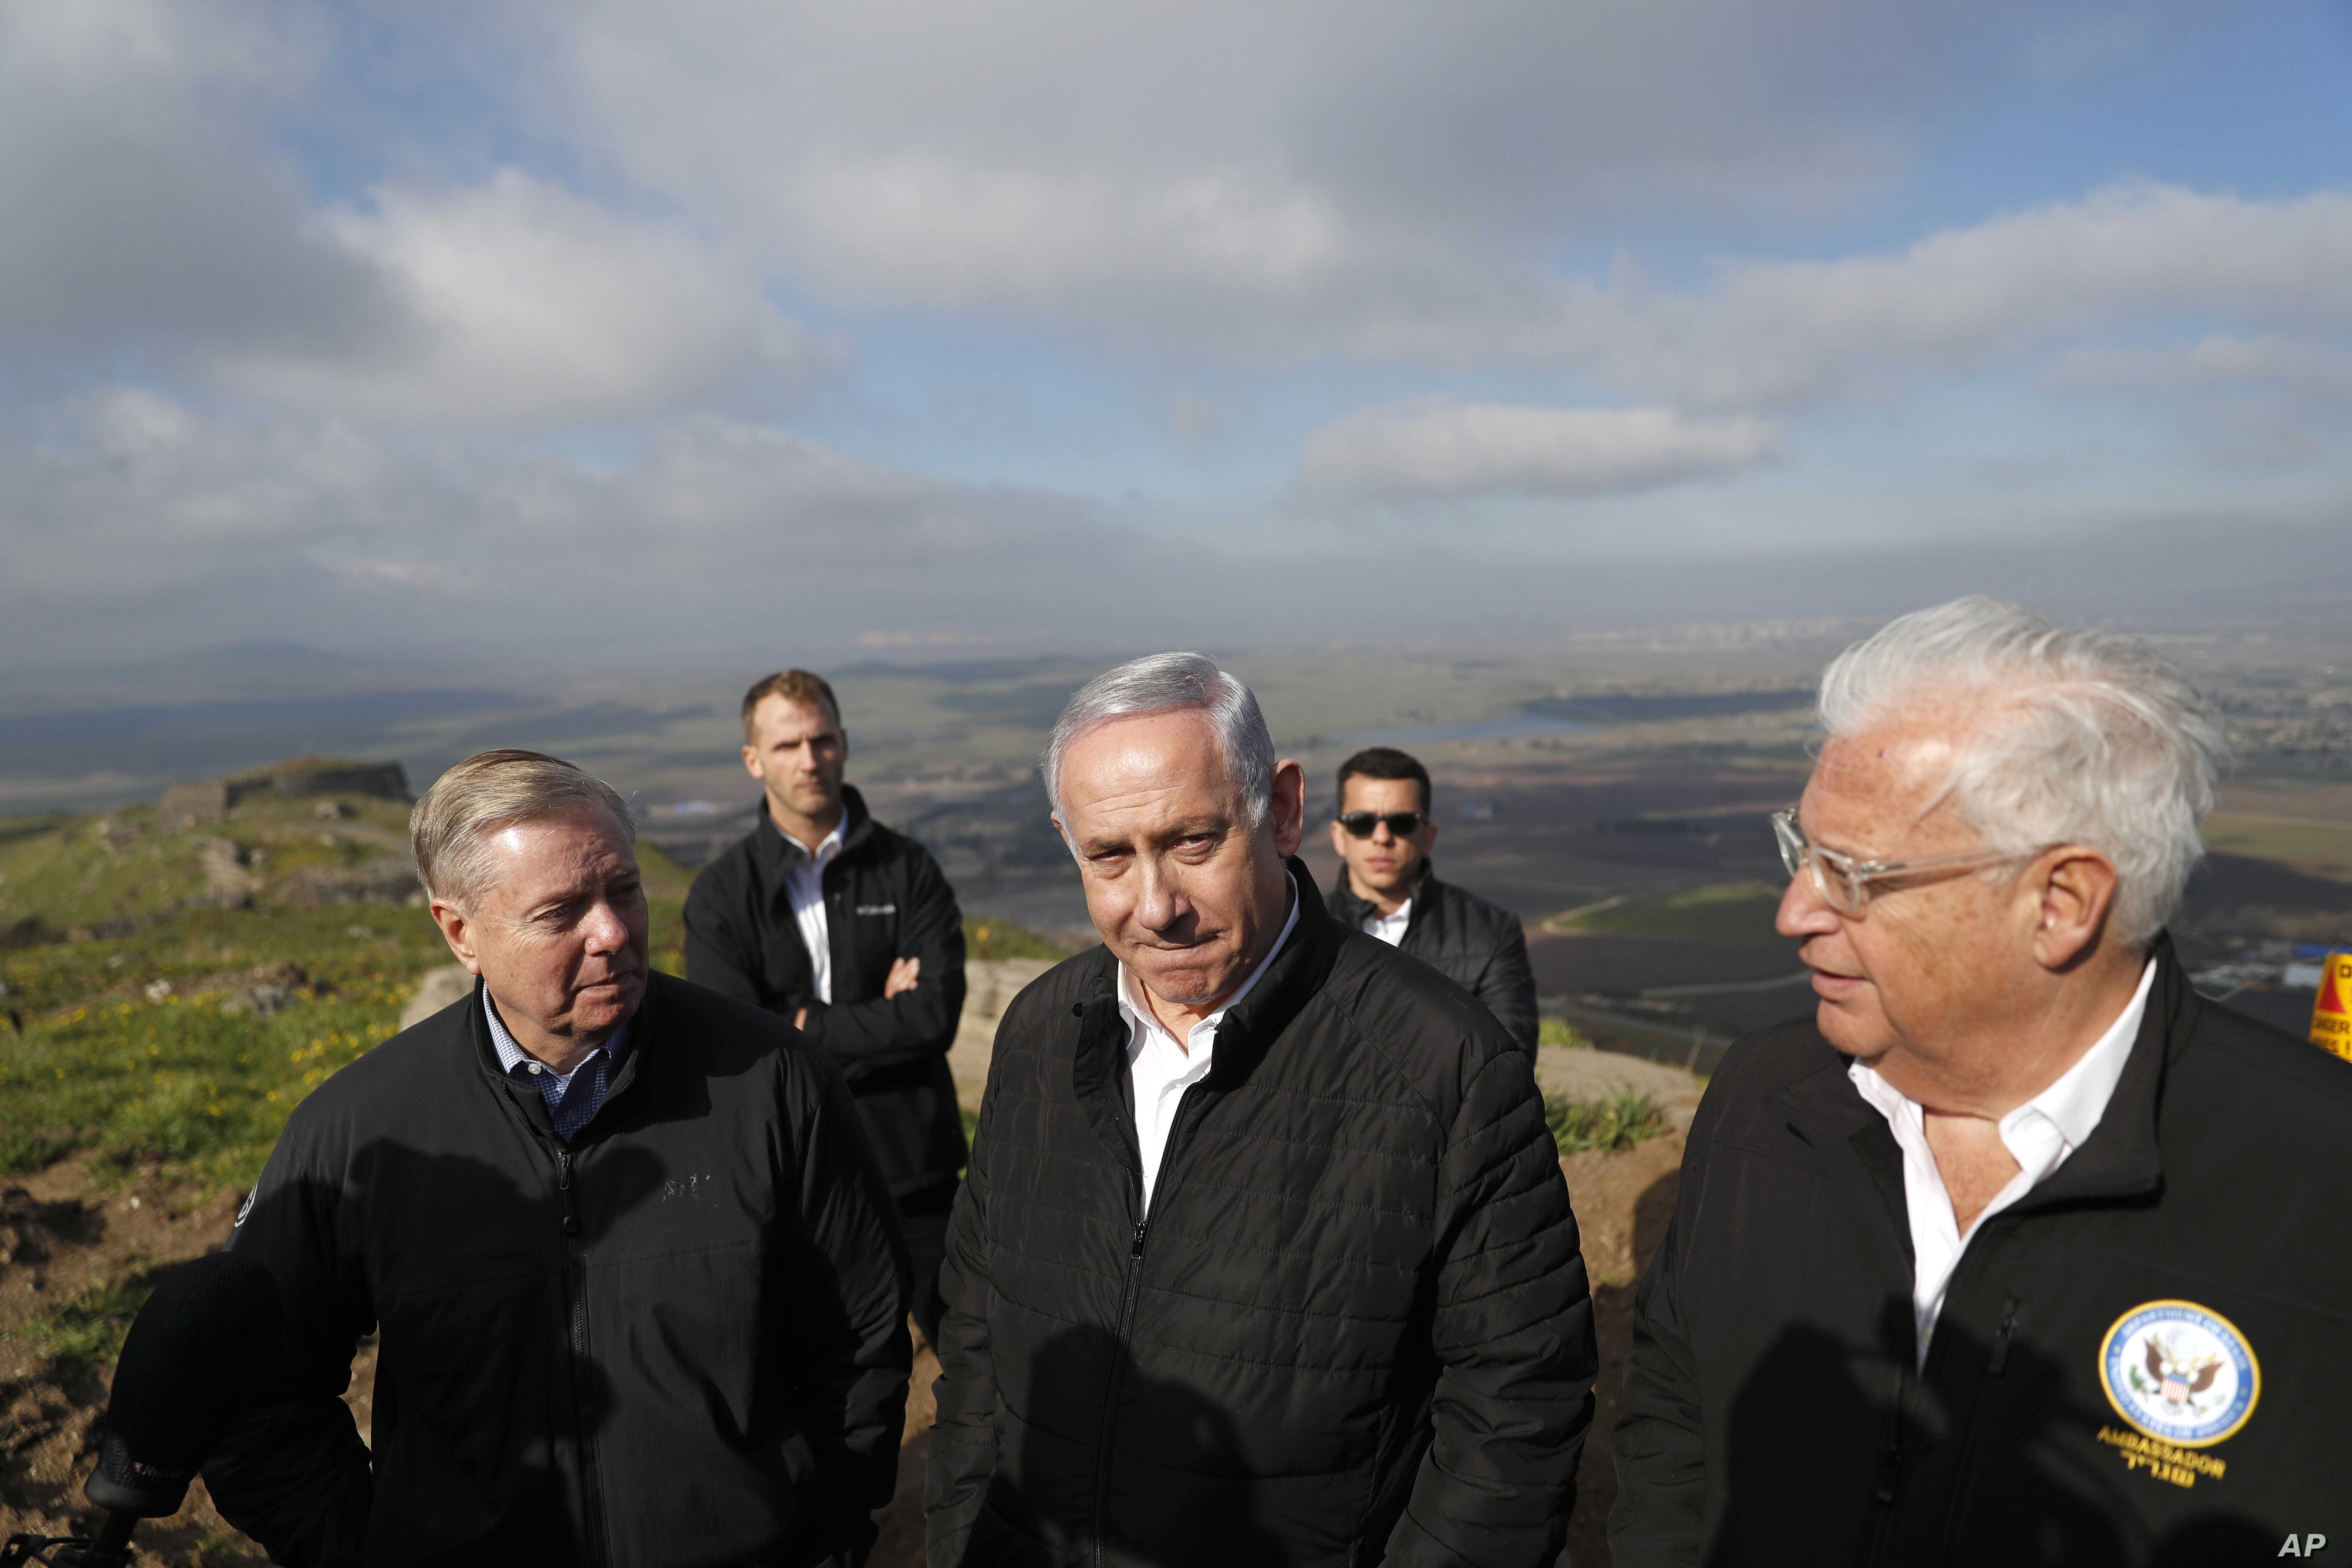 US to Redraw Maps to Show Golan Heights as Israeli Territory